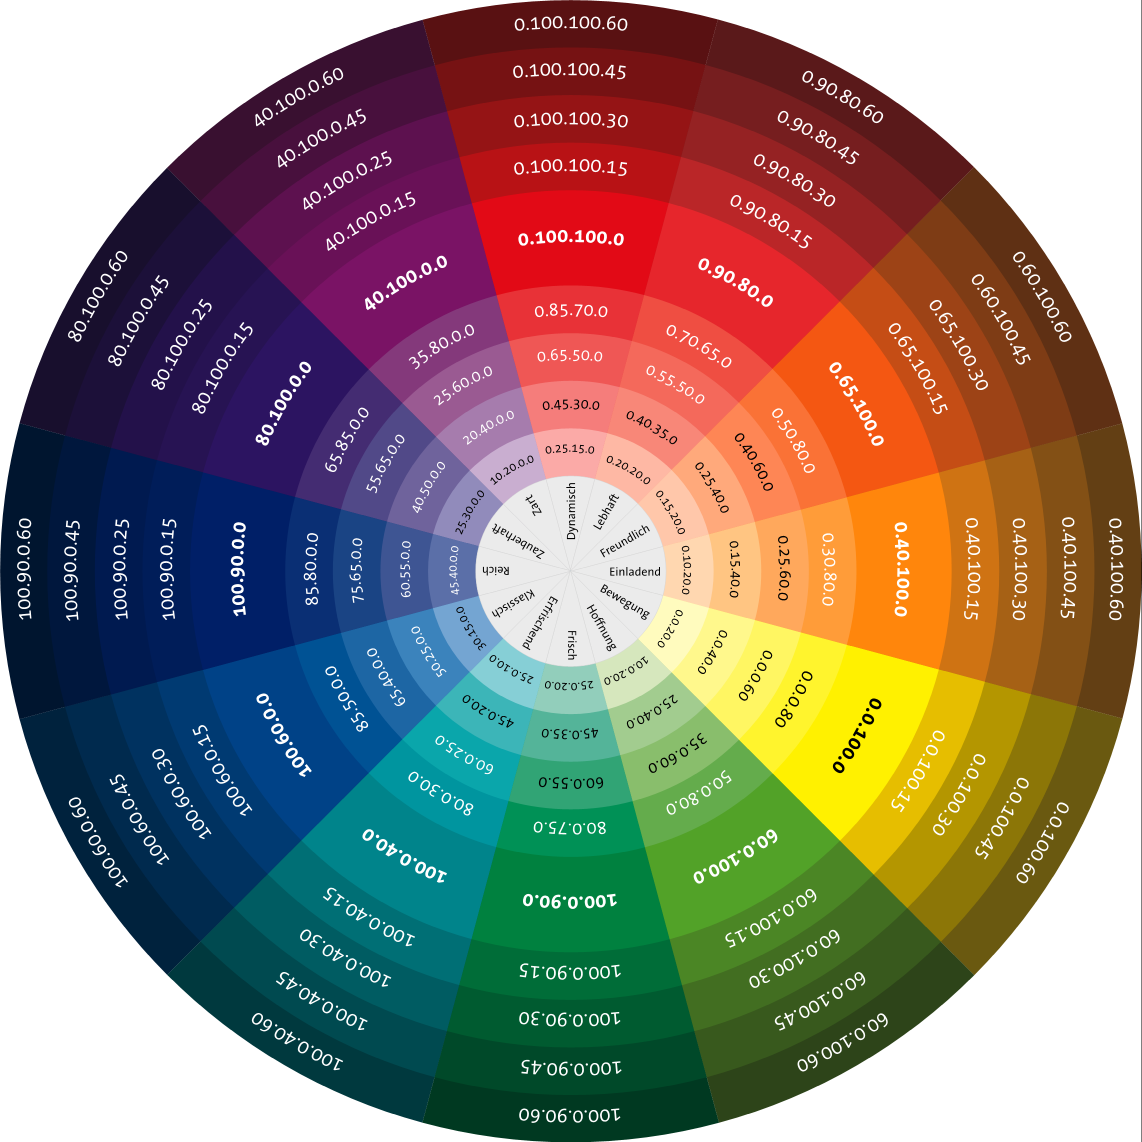 Garden Design Using Color Theory With The Wheel Choosing Two Adjacent Colors One Contrasting